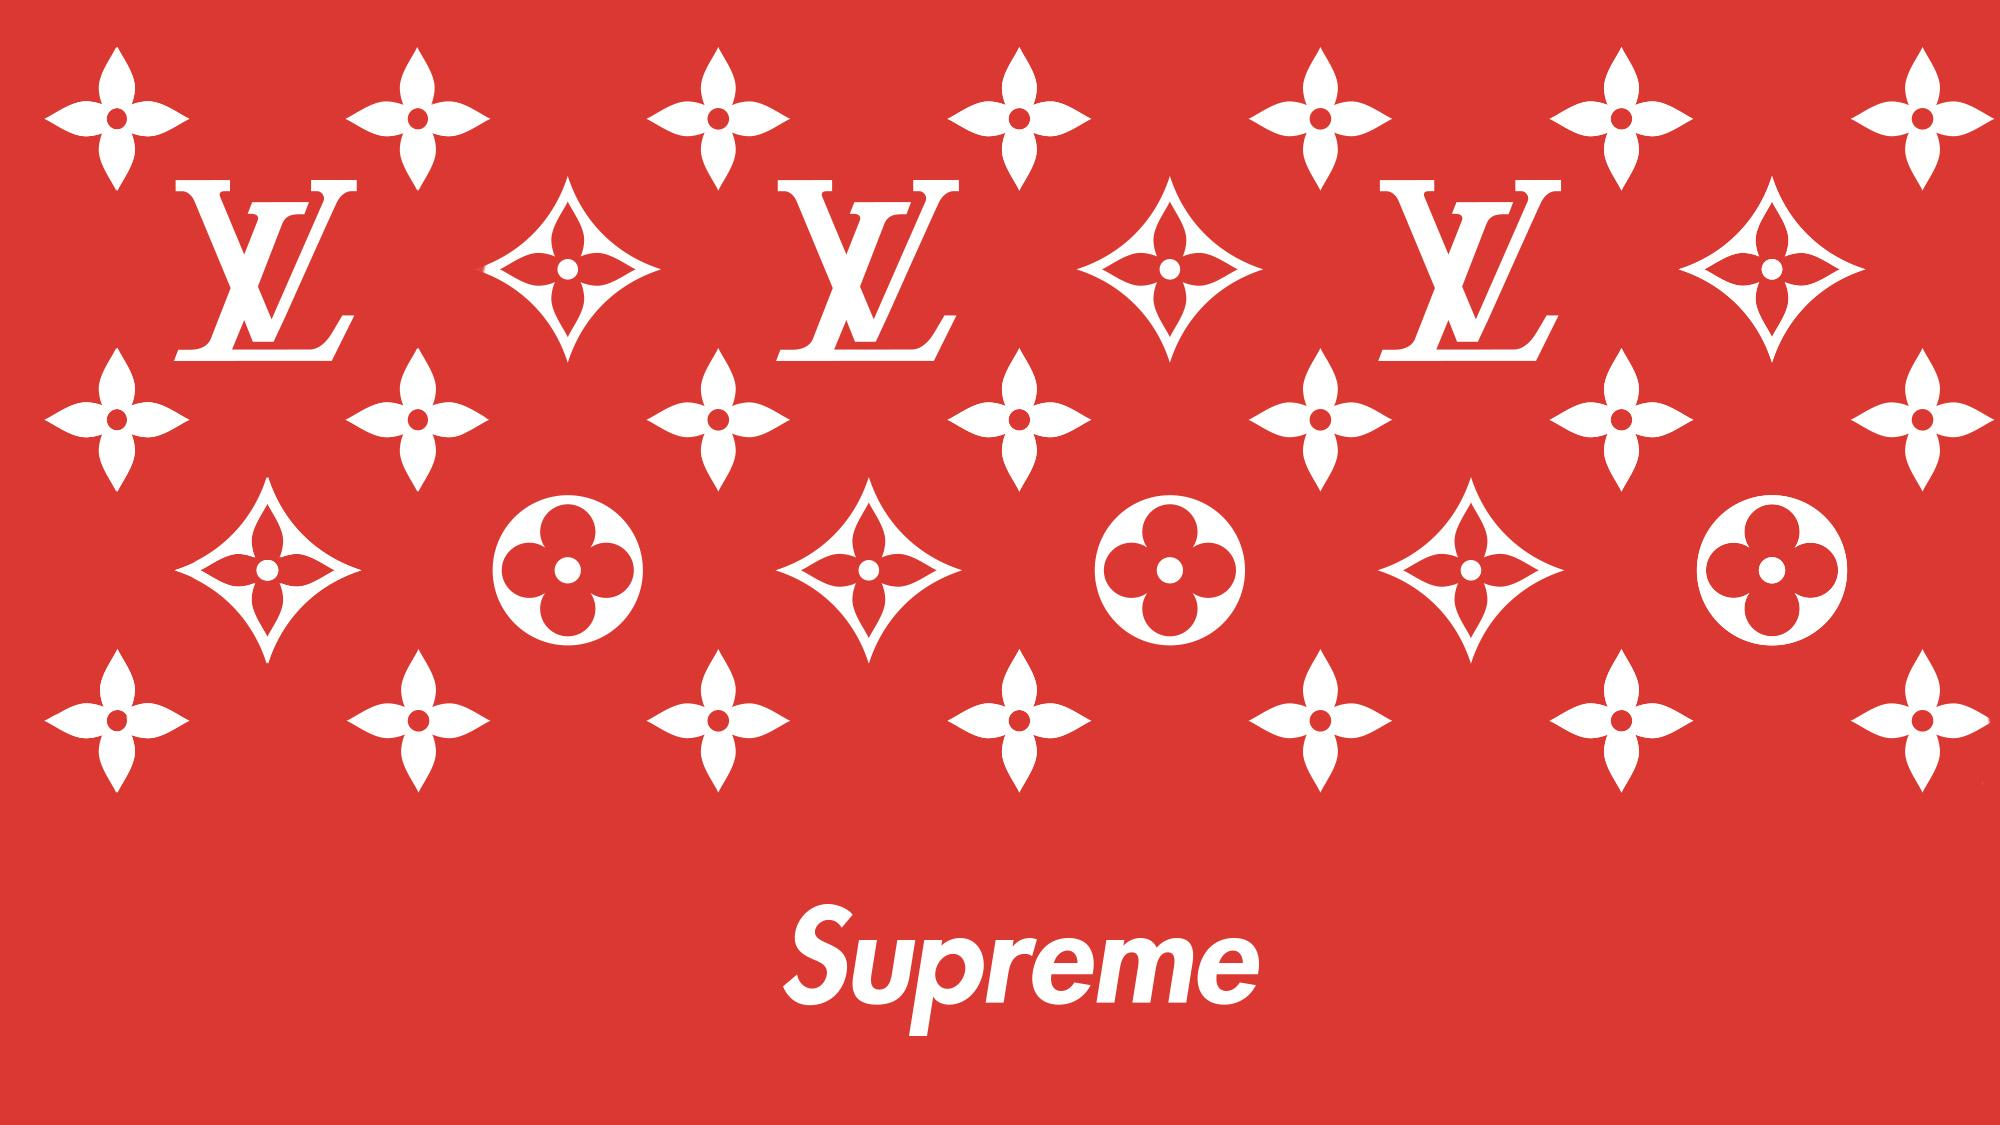 Supreme X Louis Vuitton Wallpaper Iphone